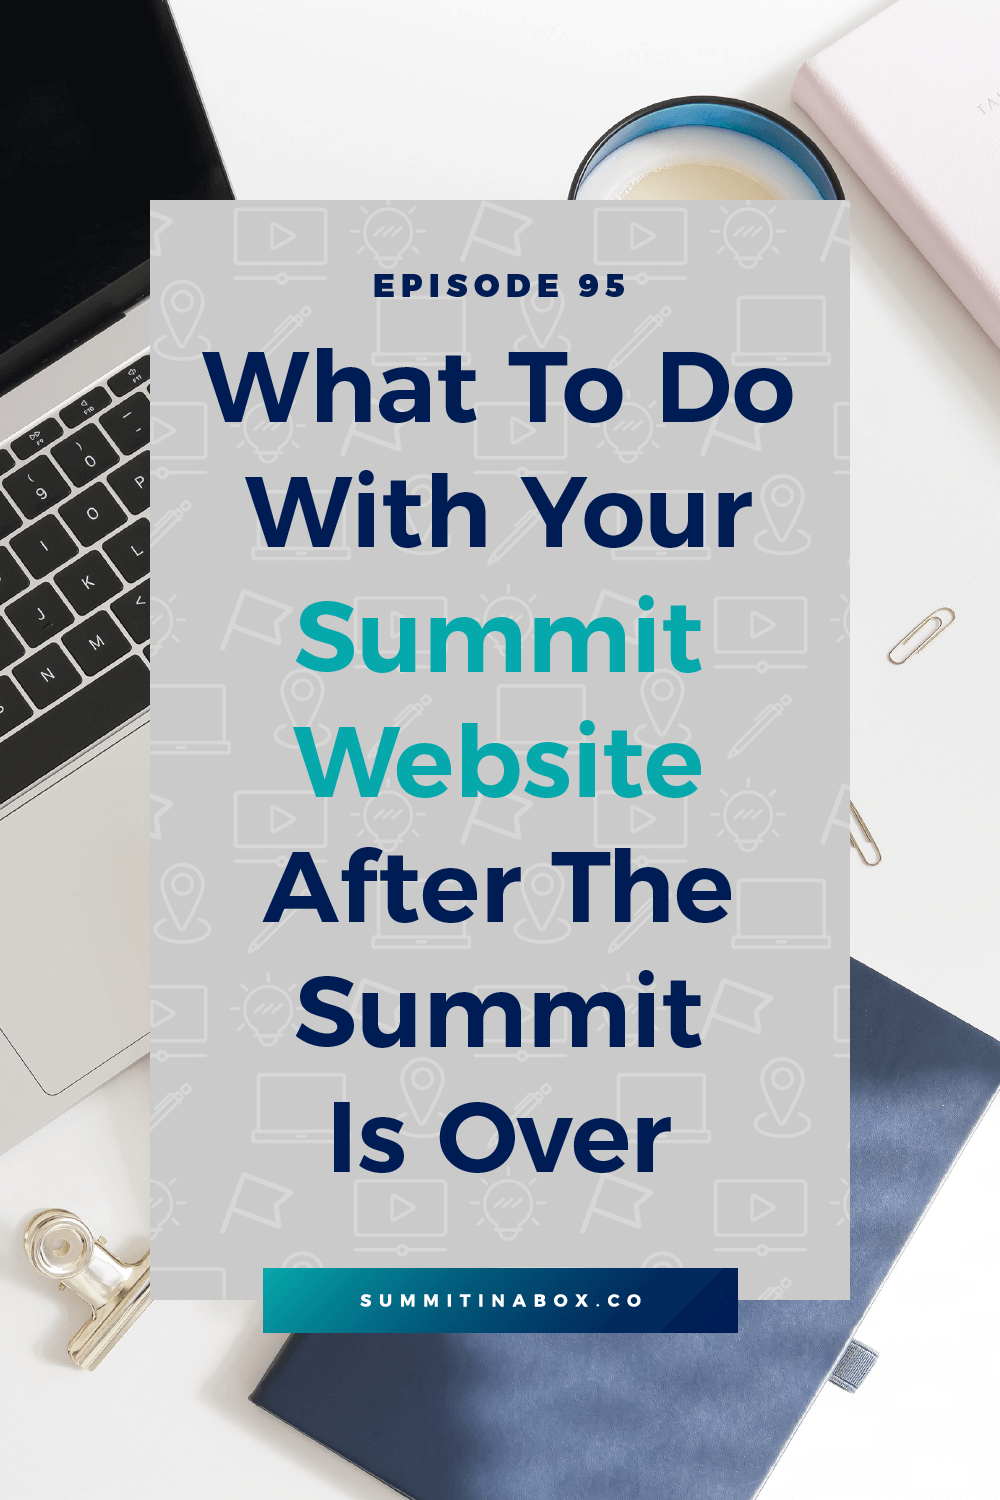 Here's a simple strategy that benefits your business and gives people who land on your virtual summit website a great experience once the event is over.